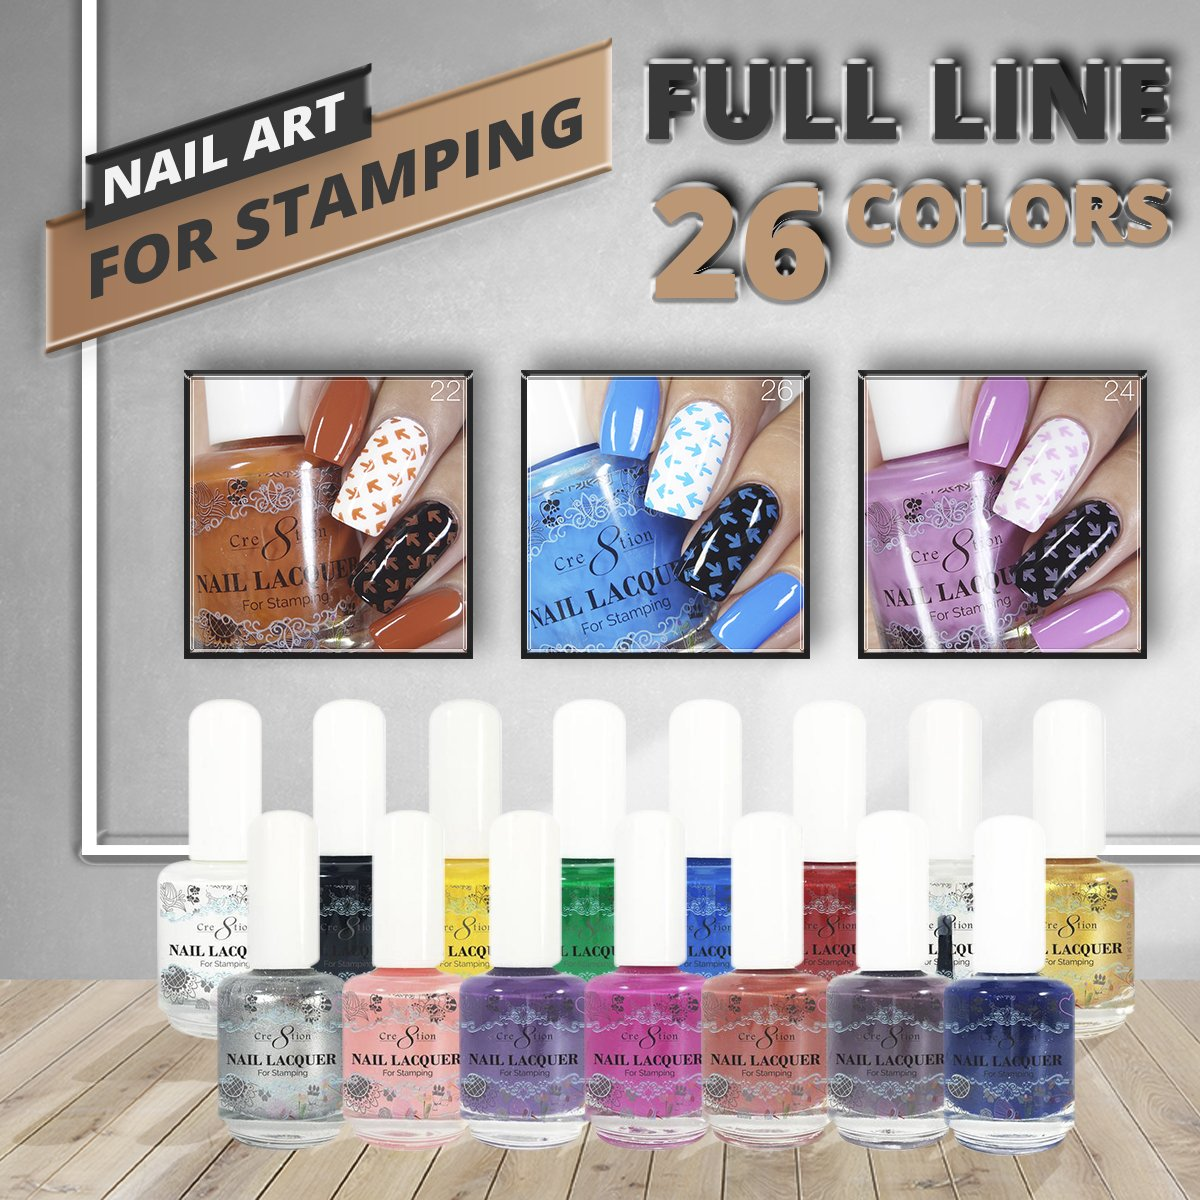 CRE8TION NAIL LACQUER FULL